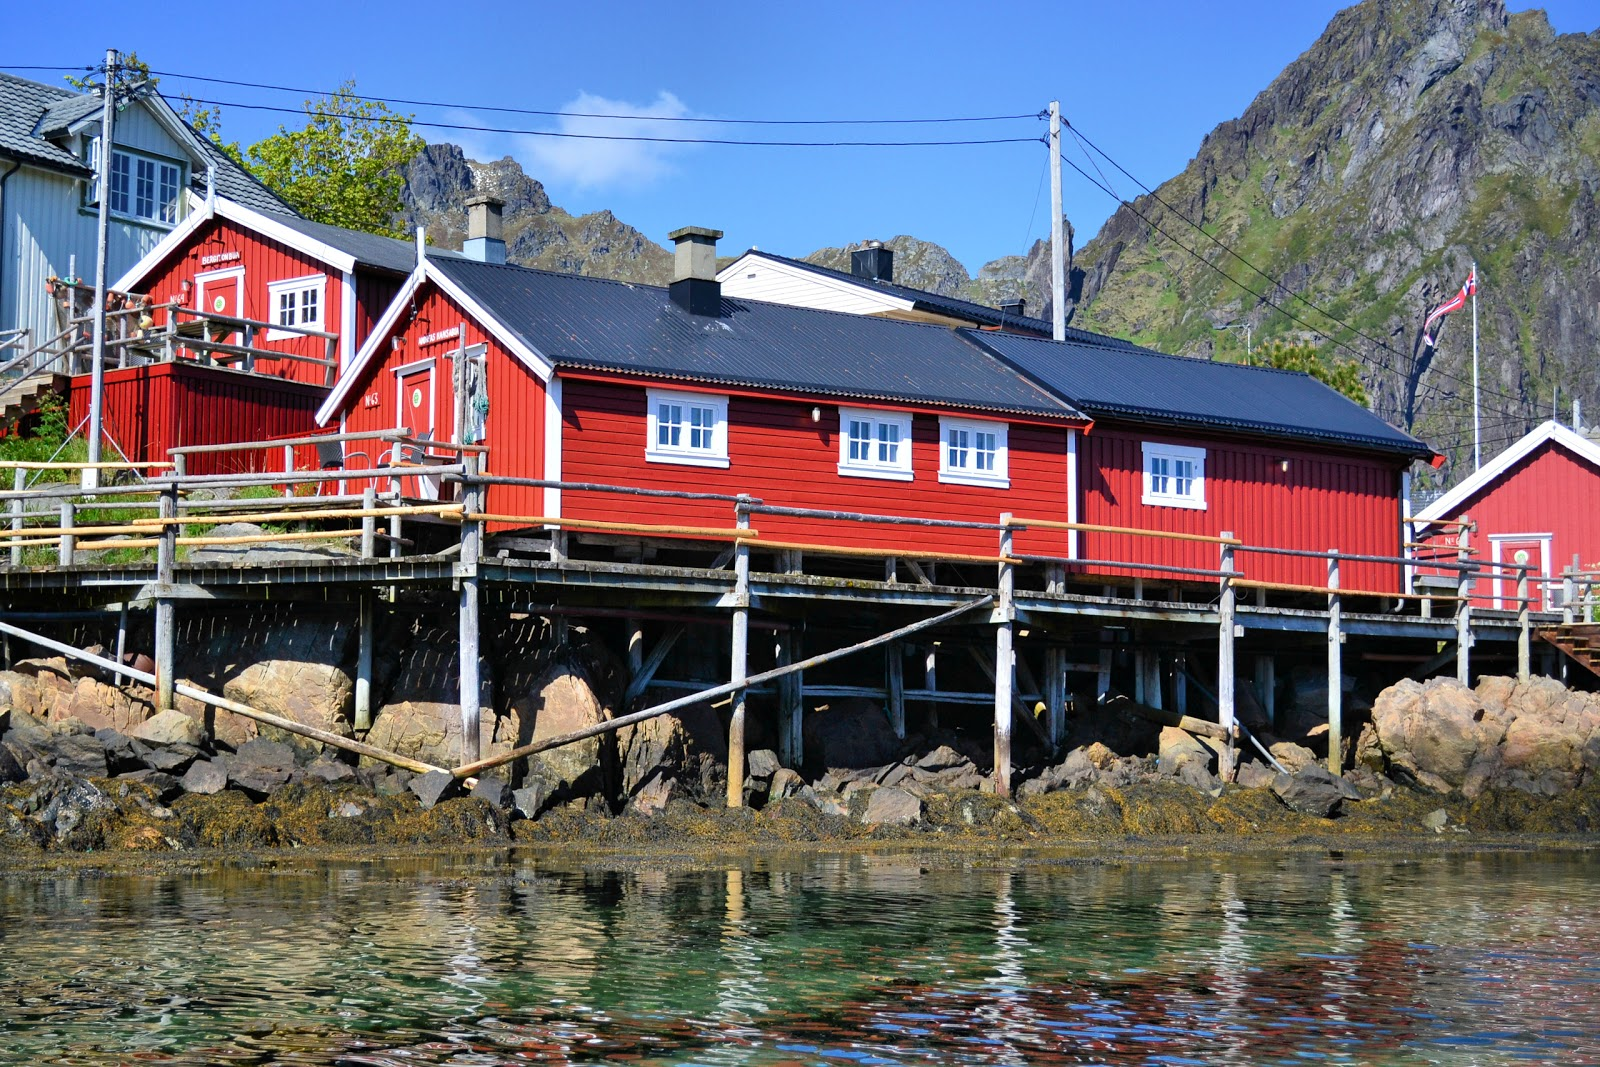 While kayaking with XXLofoten, my kayak pilot pilot Miriam explained that these rorbuer date back to the 18th century.